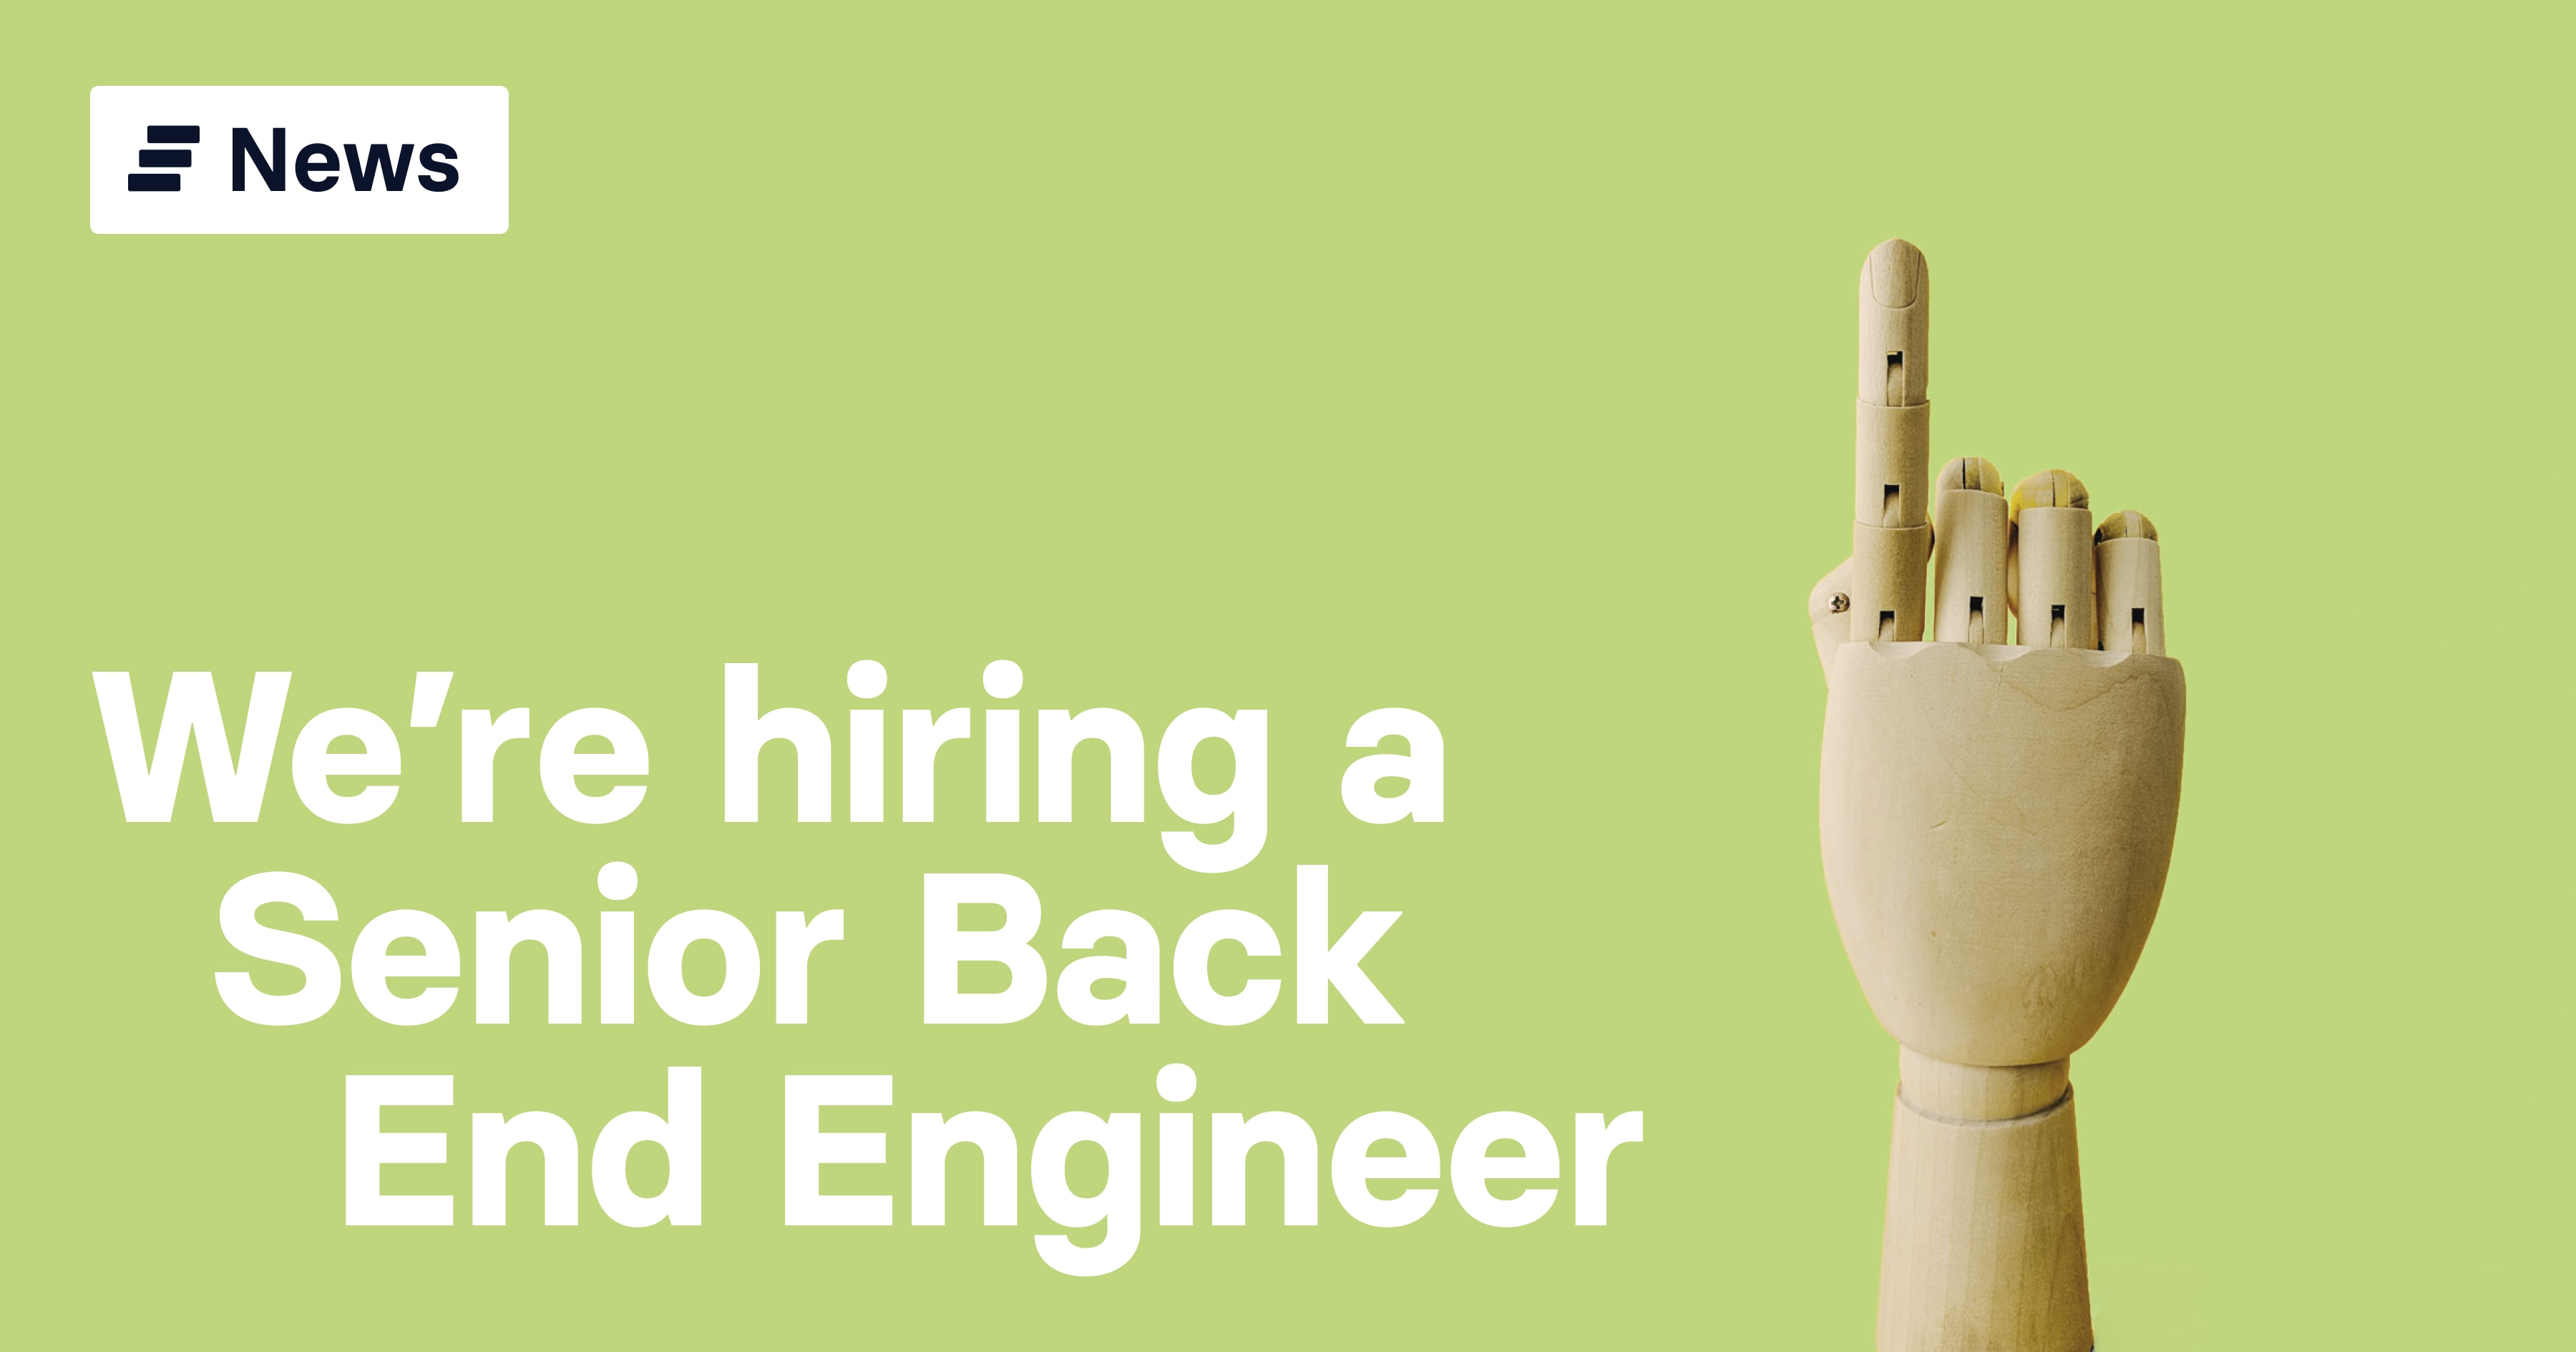 We're hiring: Senior Back End Engineer